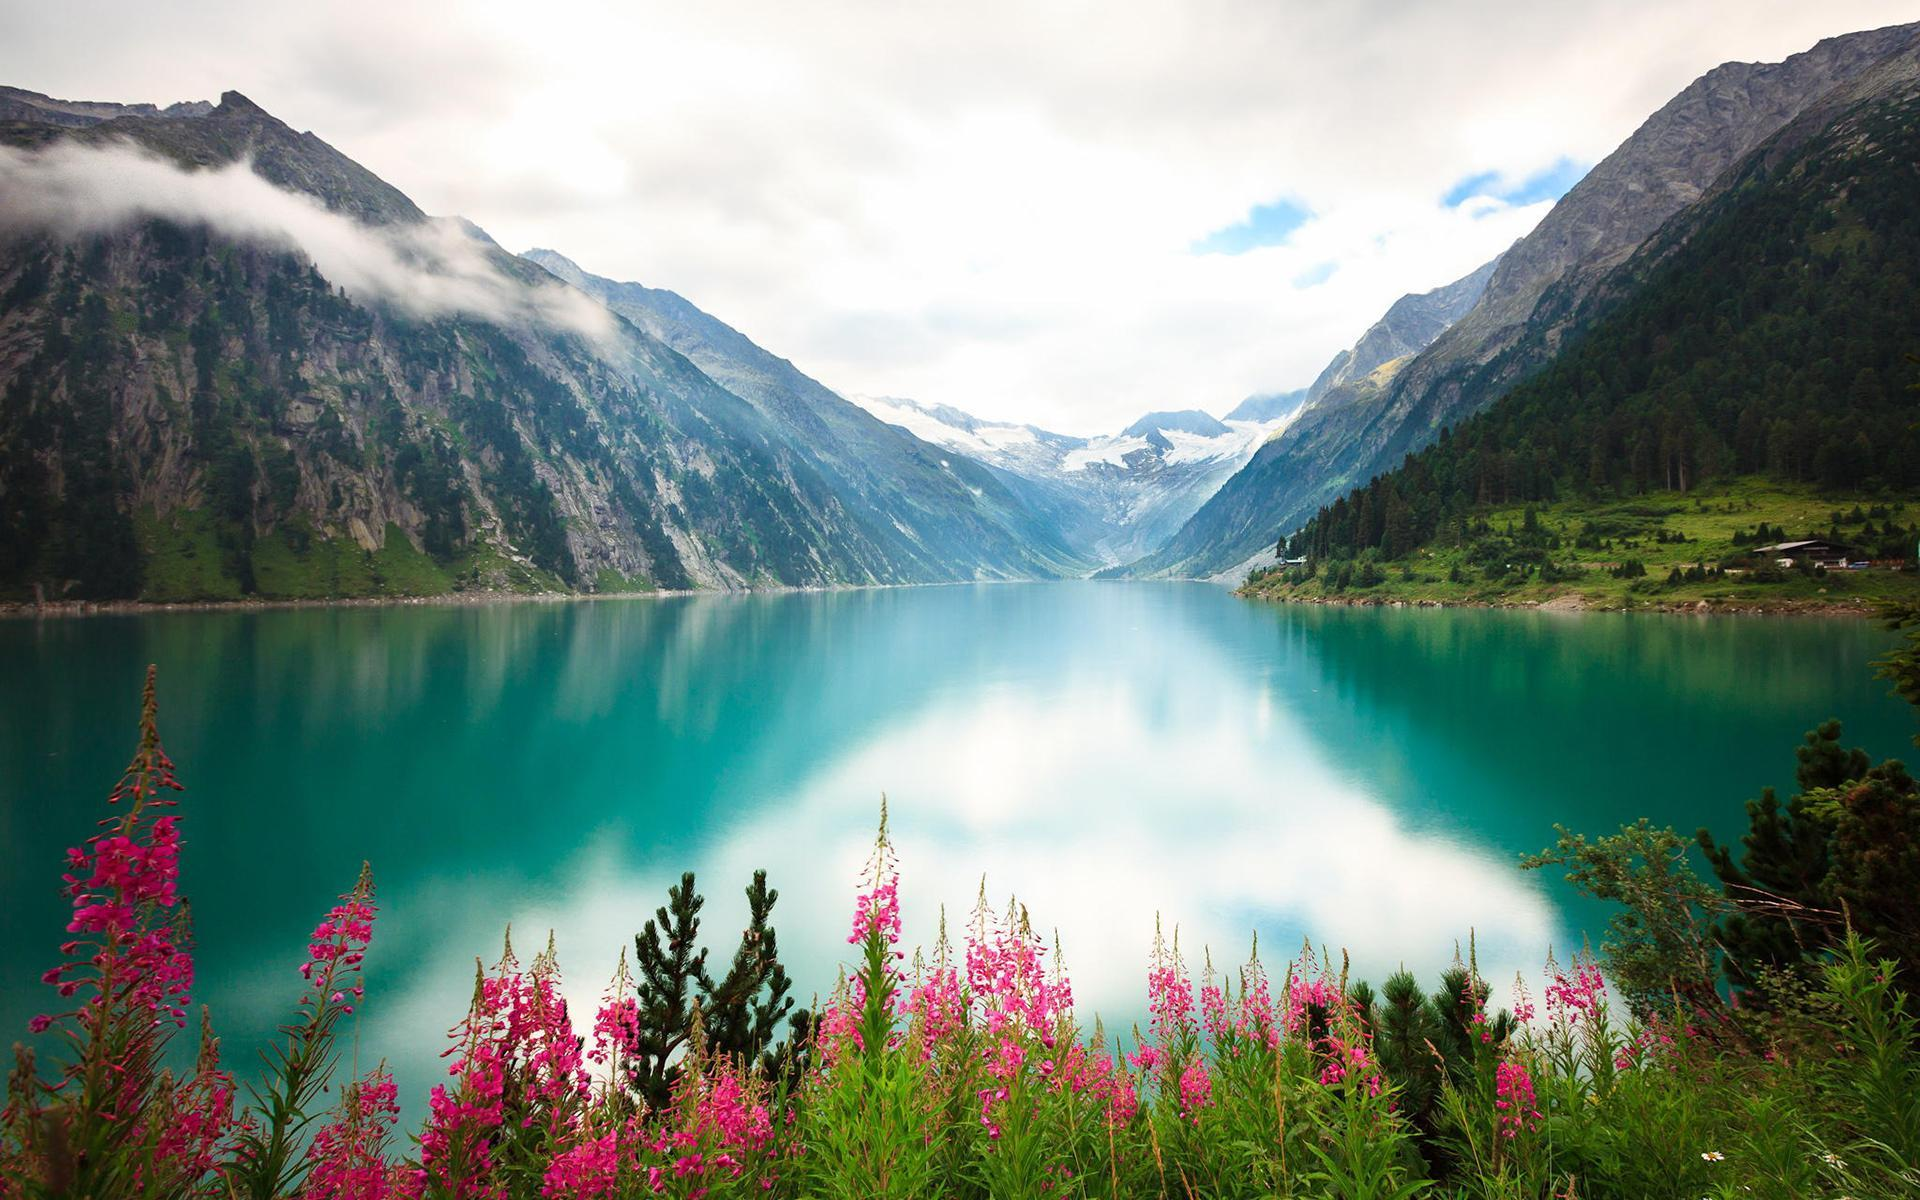 Hd Lake Views Wallpaper For Android Apk Download